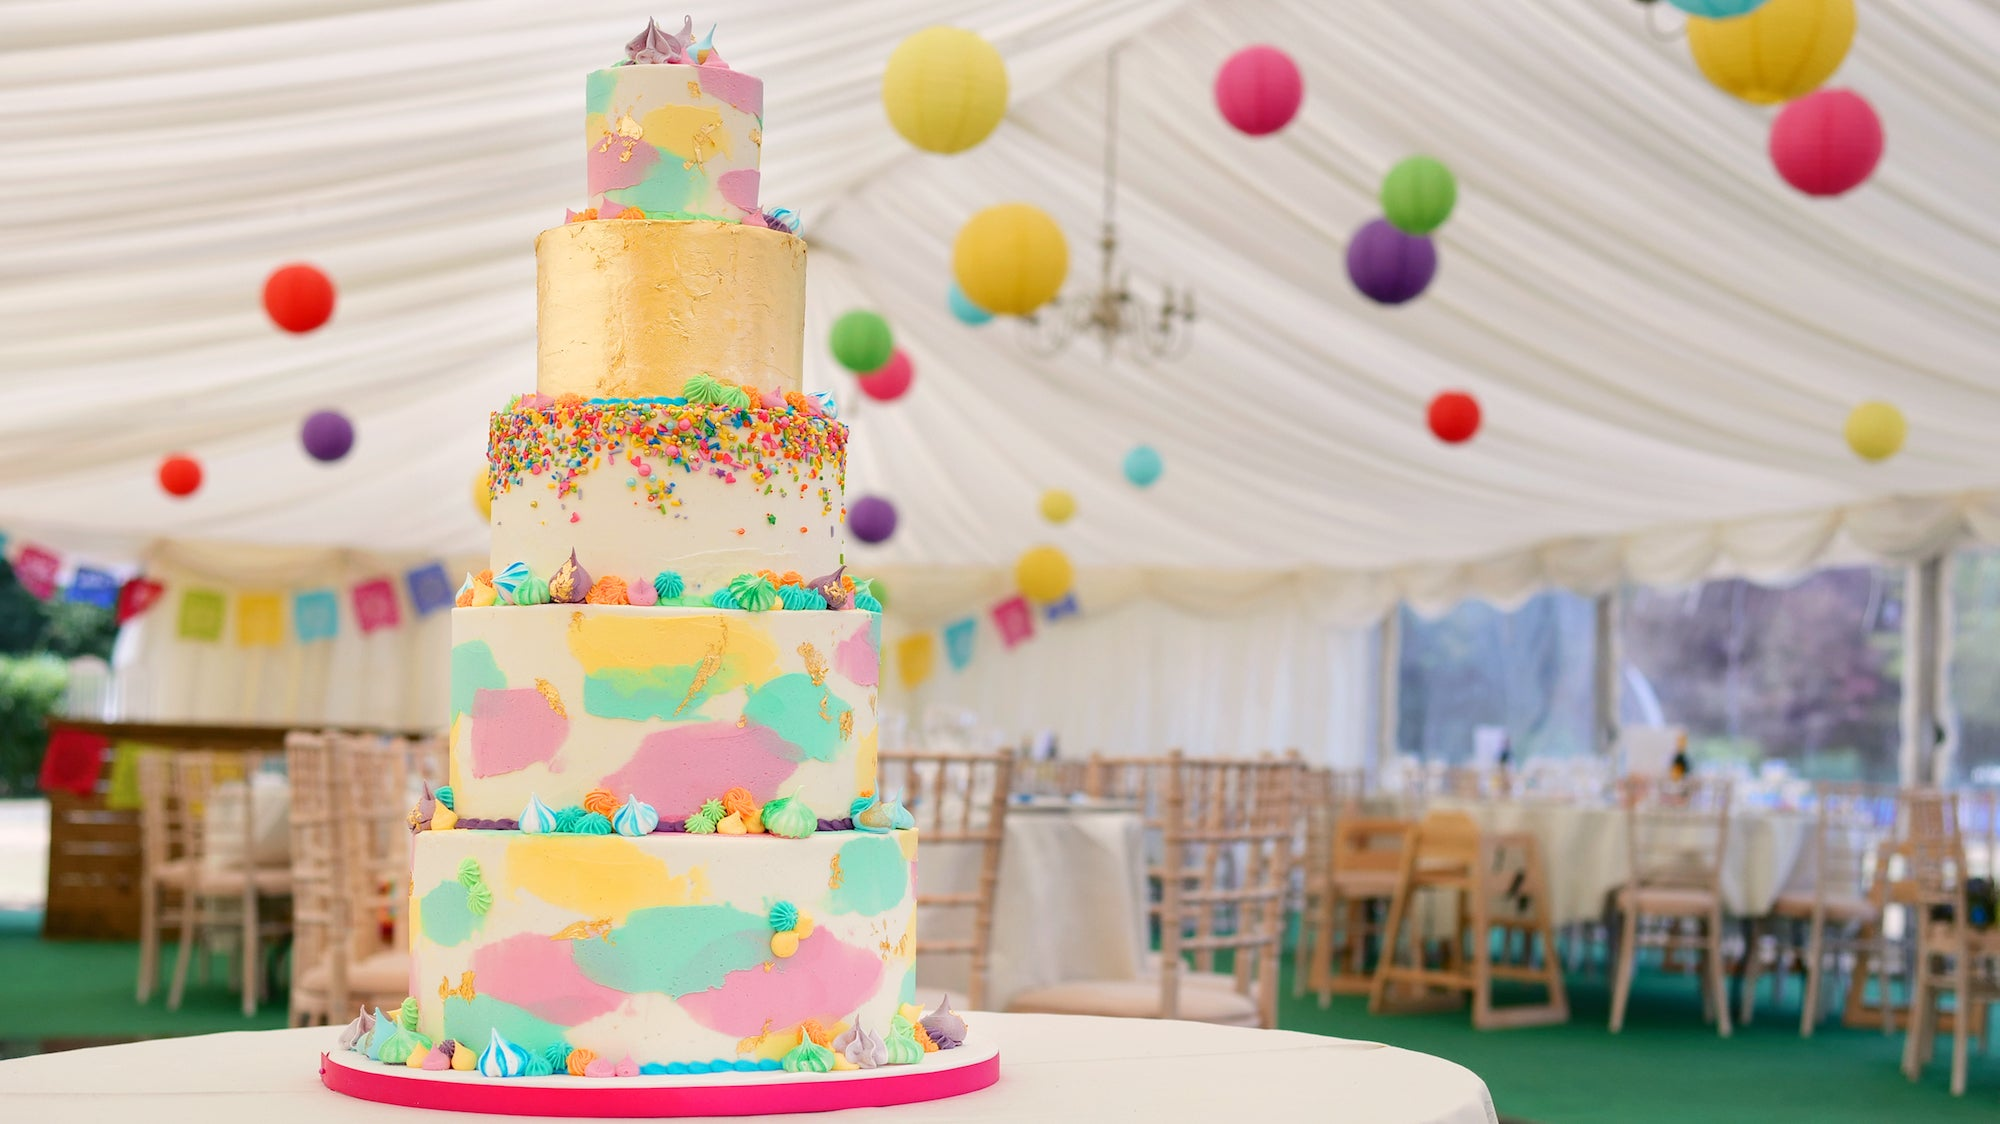 Tiered Wedding Cakes And More